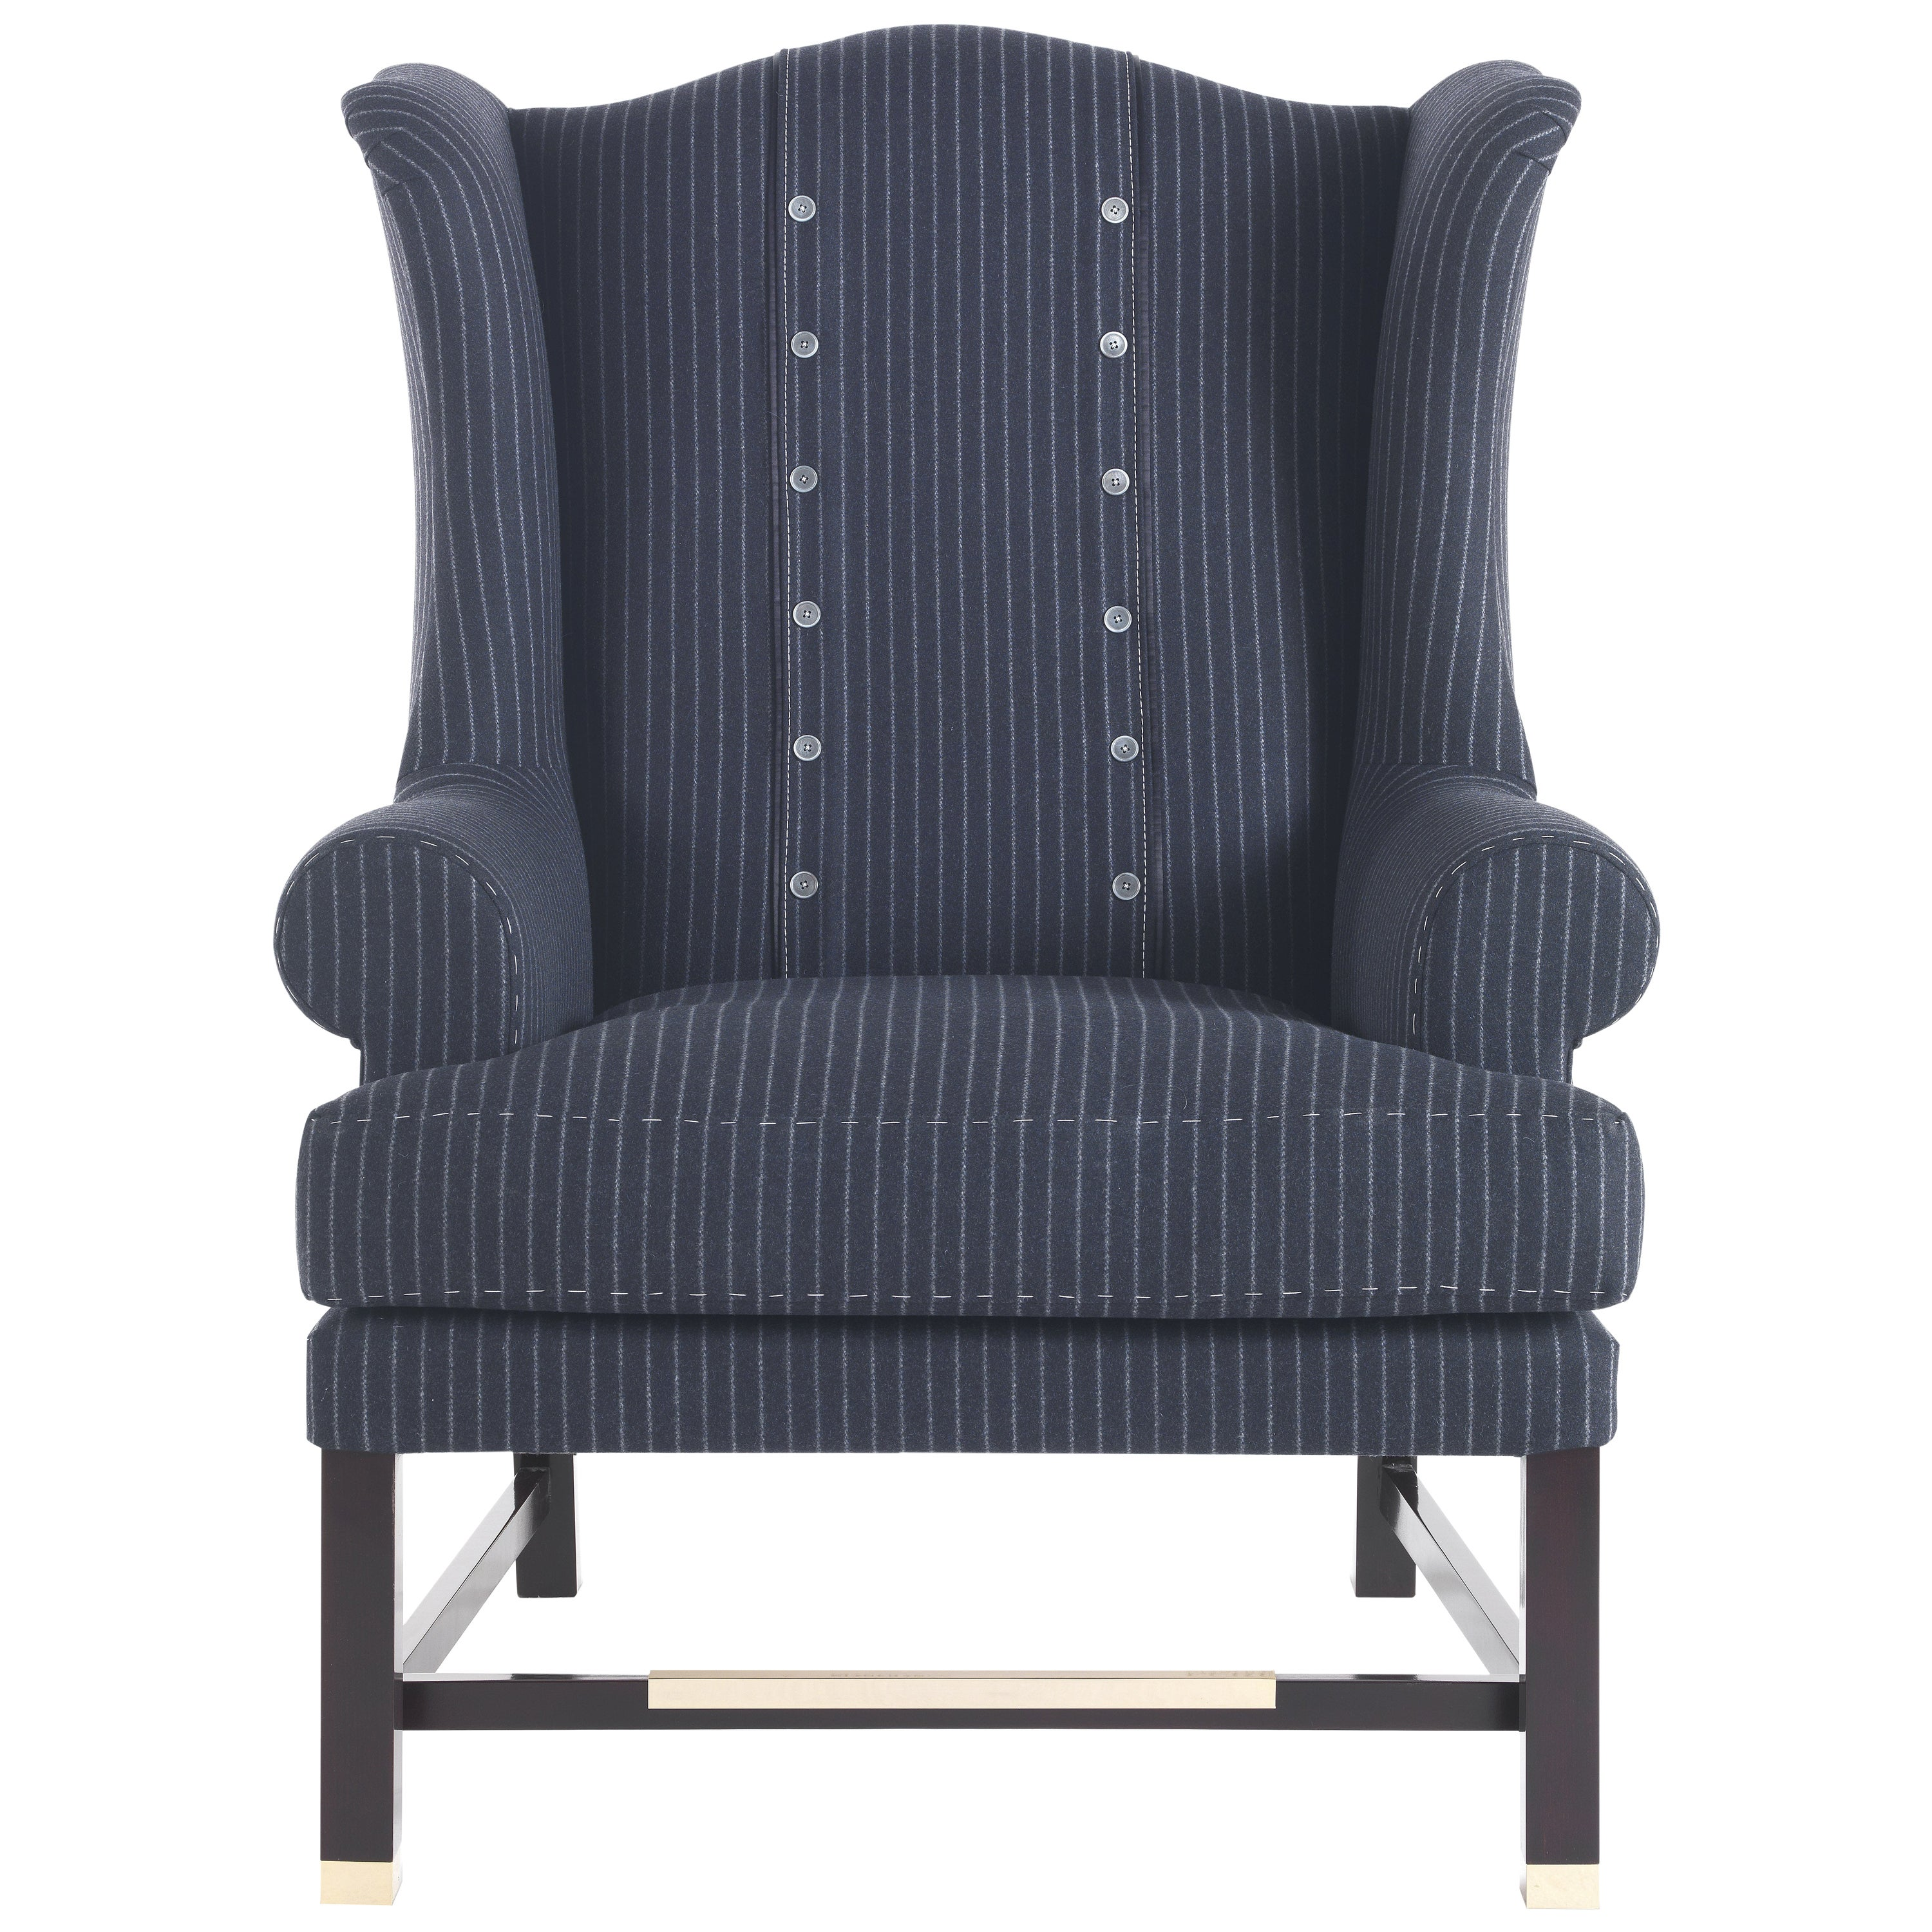 Gianfranco Ferré Home Ayla_2 Armchair in Fabric